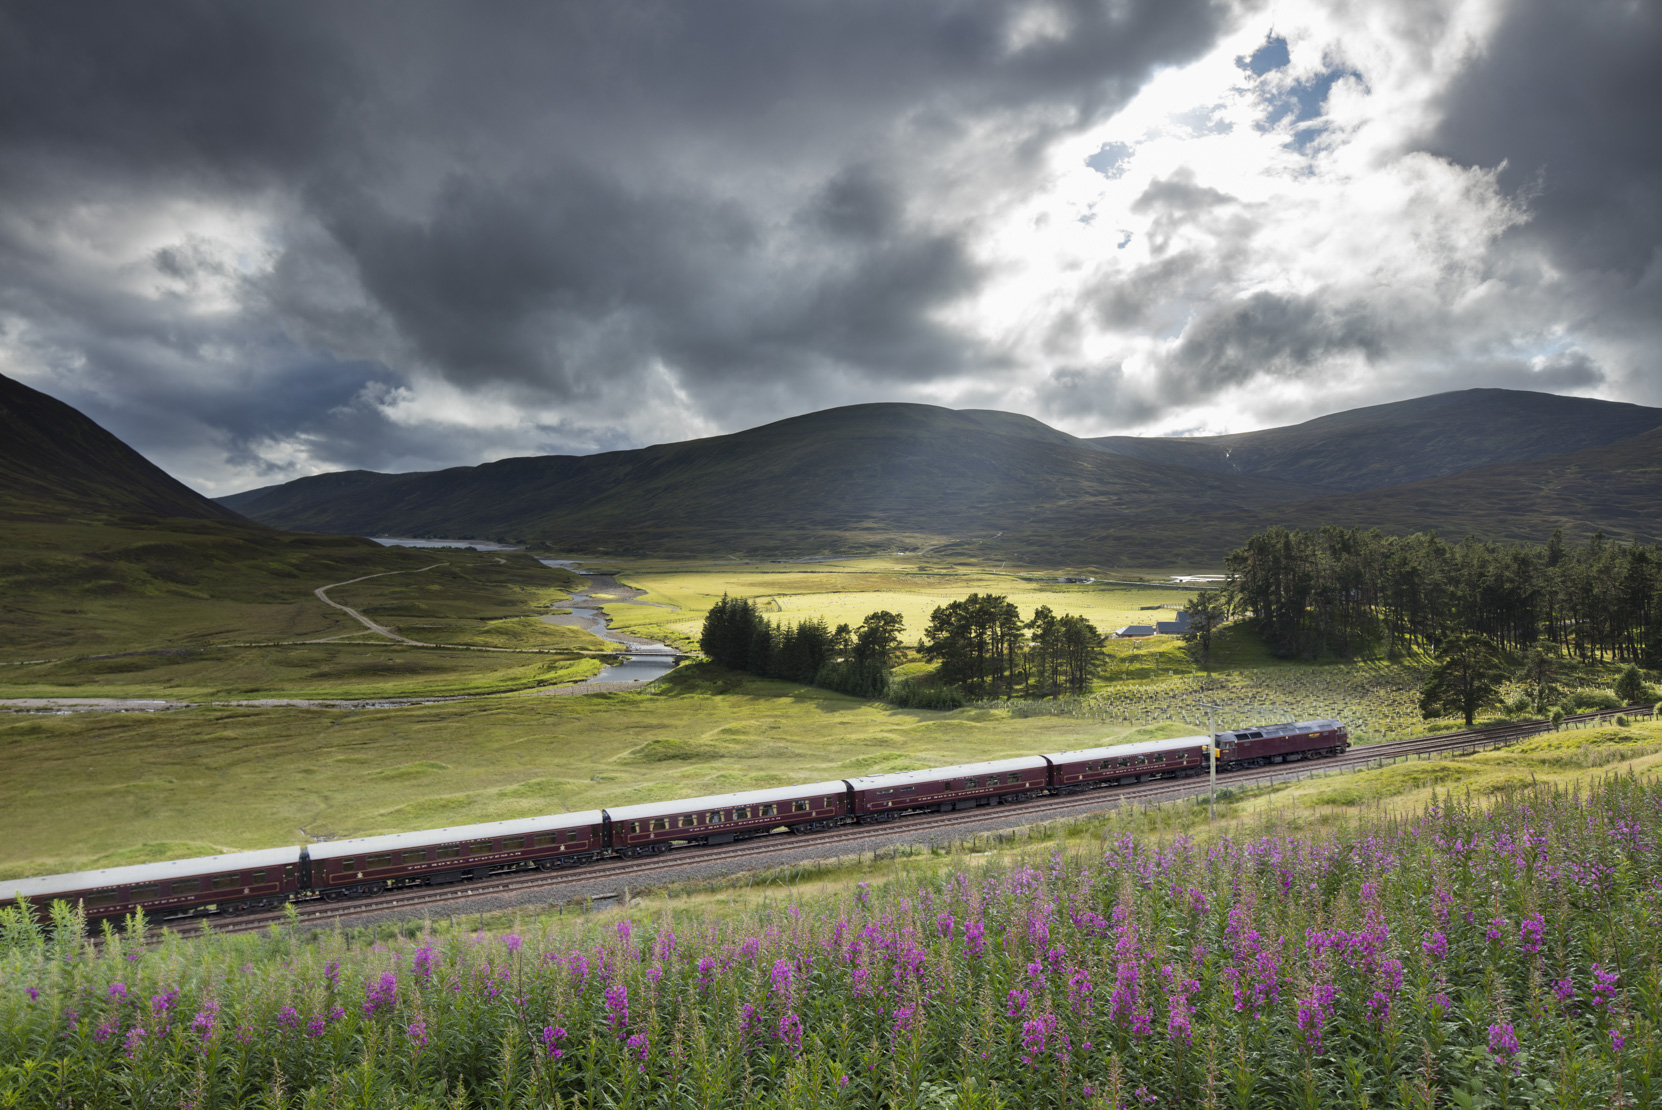 The Royal Scotsman on the line from Perth to Inverness at Dalnaspidal, nr Dalwhinnie, Badenoch and Strathspey, Scotland, UK